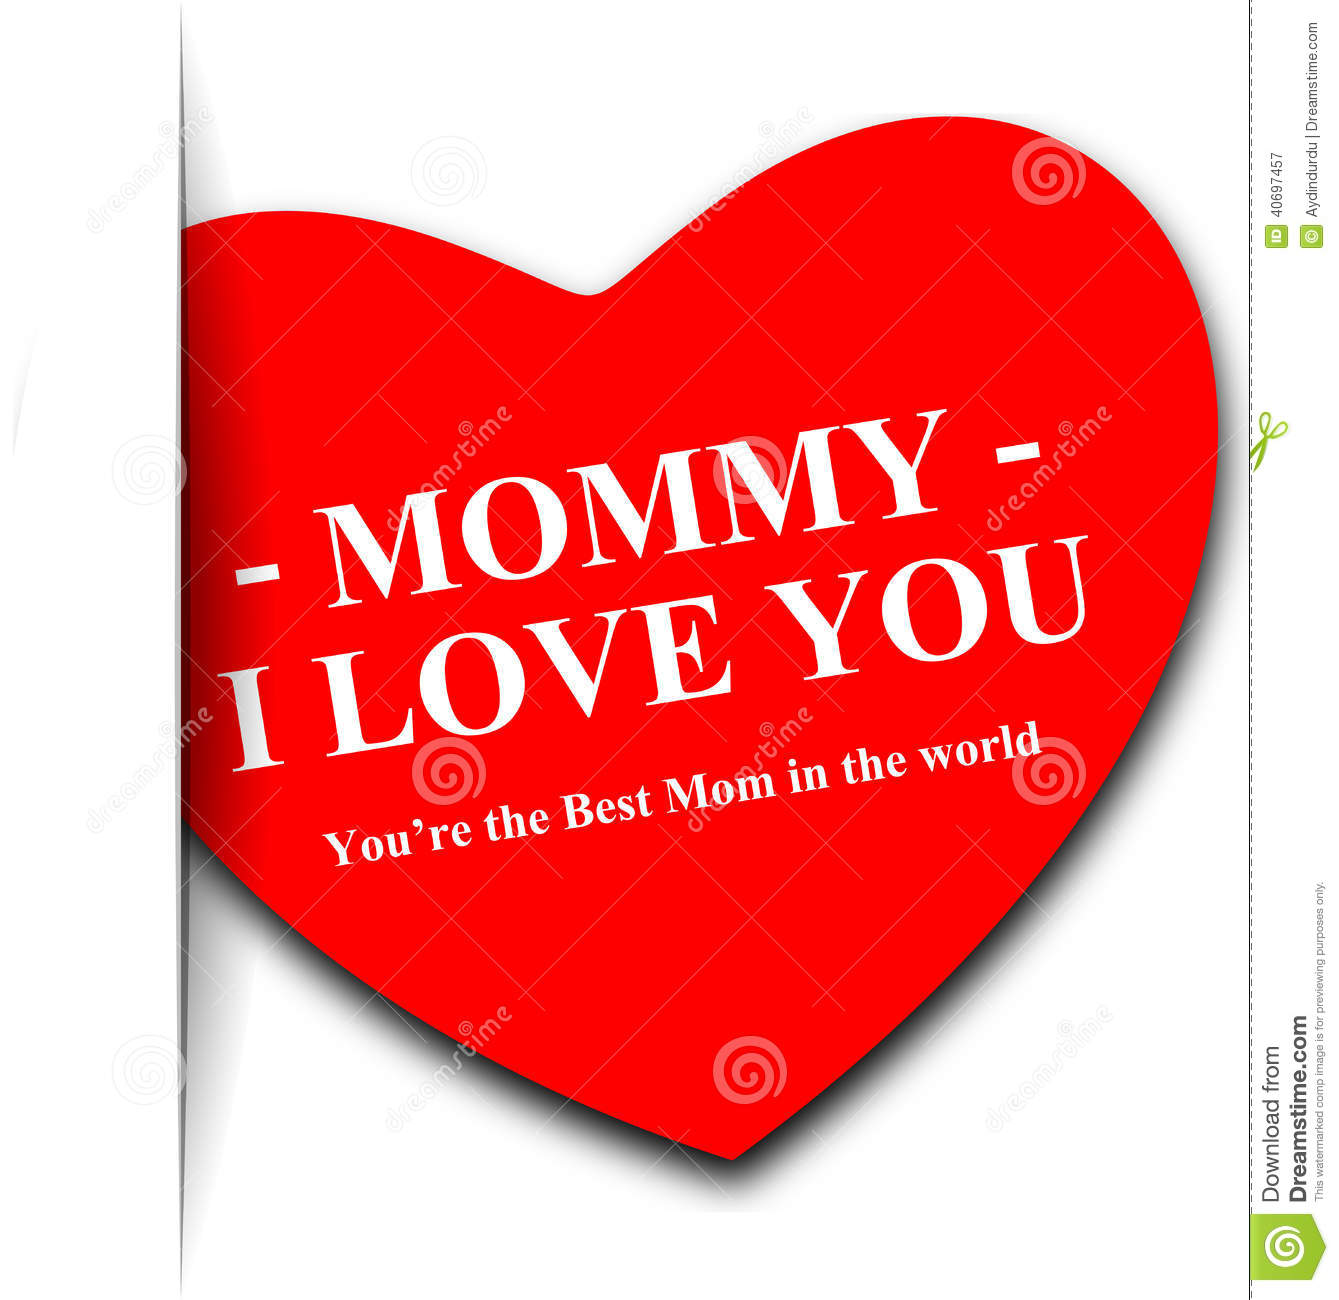 Mommy I Love You Stock Illustration